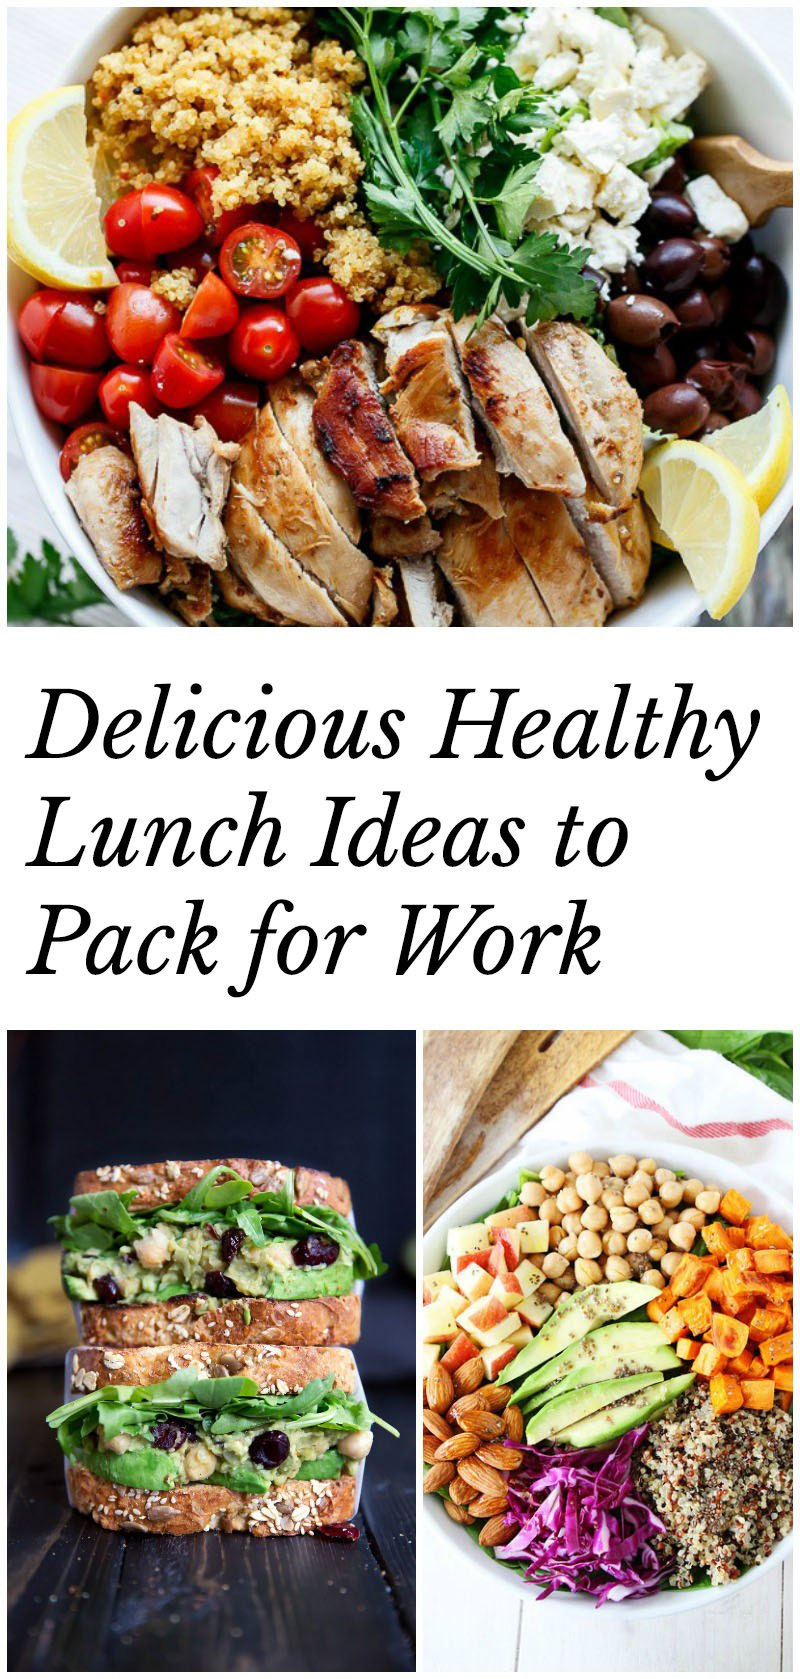 Healthy lunch ideas to pack for work 40 recipes delicious healthy lunch ideas to pack for work lots of salads sandwich options forumfinder Choice Image